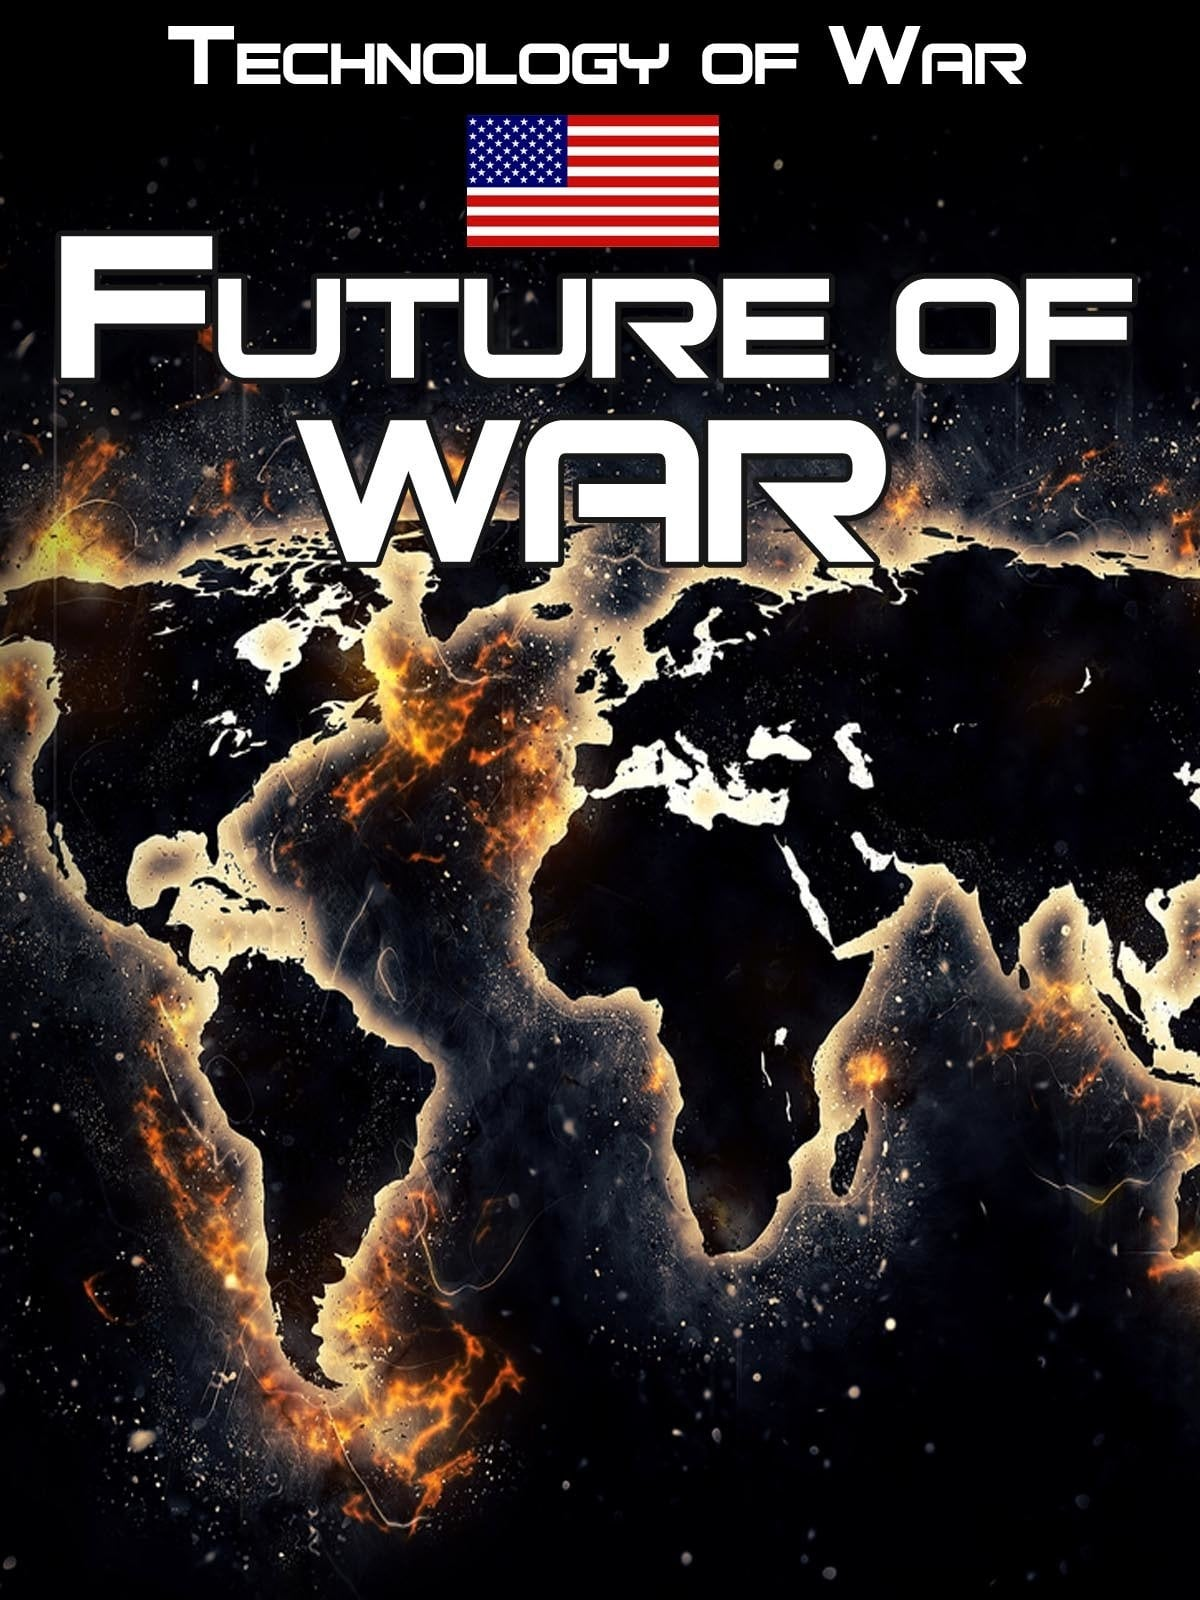 Technology of War: The Future of War on FREECABLE TV